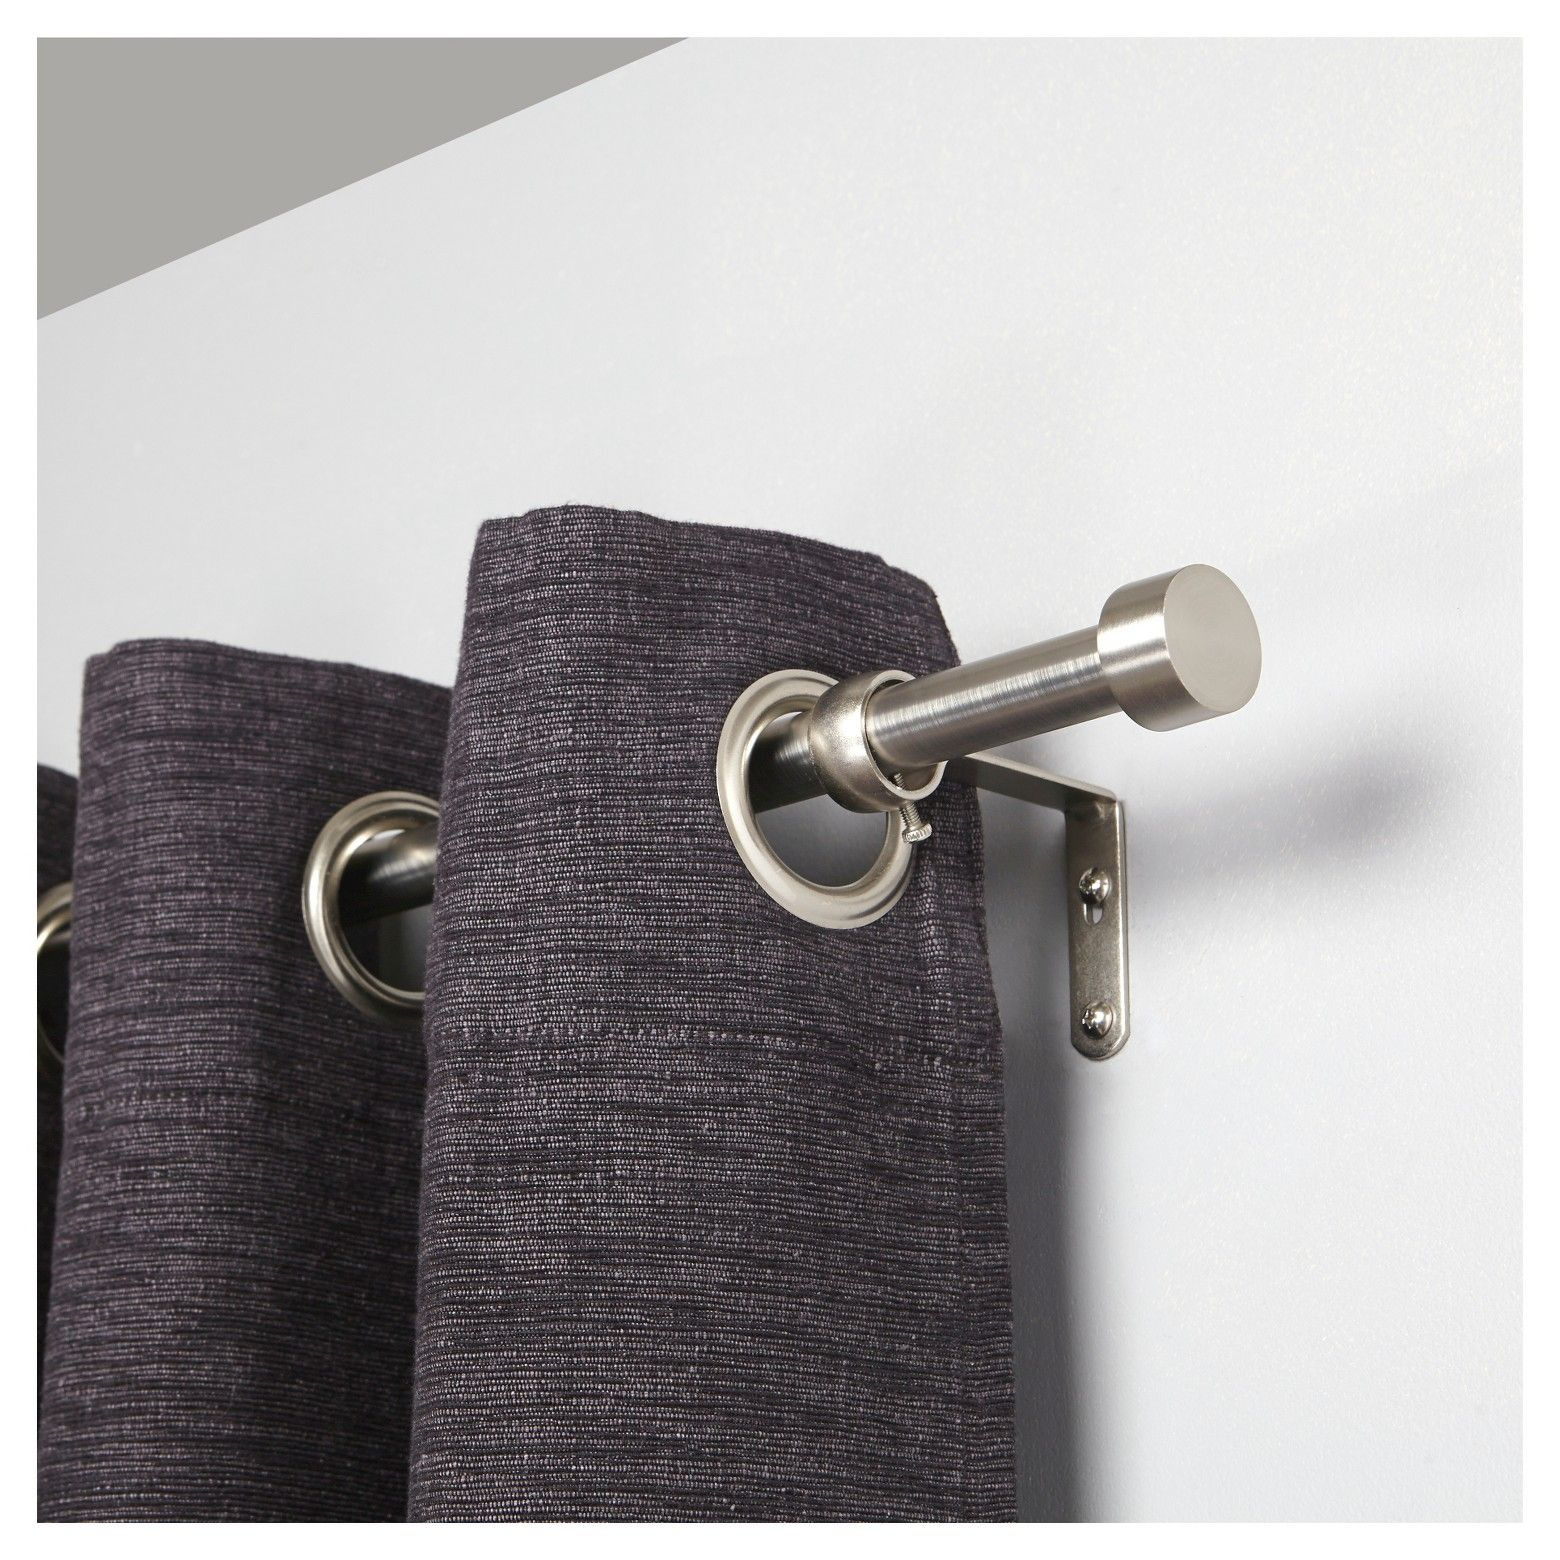 The Loft By Umbra Dauntless Curtain Rod Set Includes A 1 Quot Diameter Telescoping Rod In A Nickel Finish Two Decorative Fi Drapery Rods Curtain Rods Rod Set